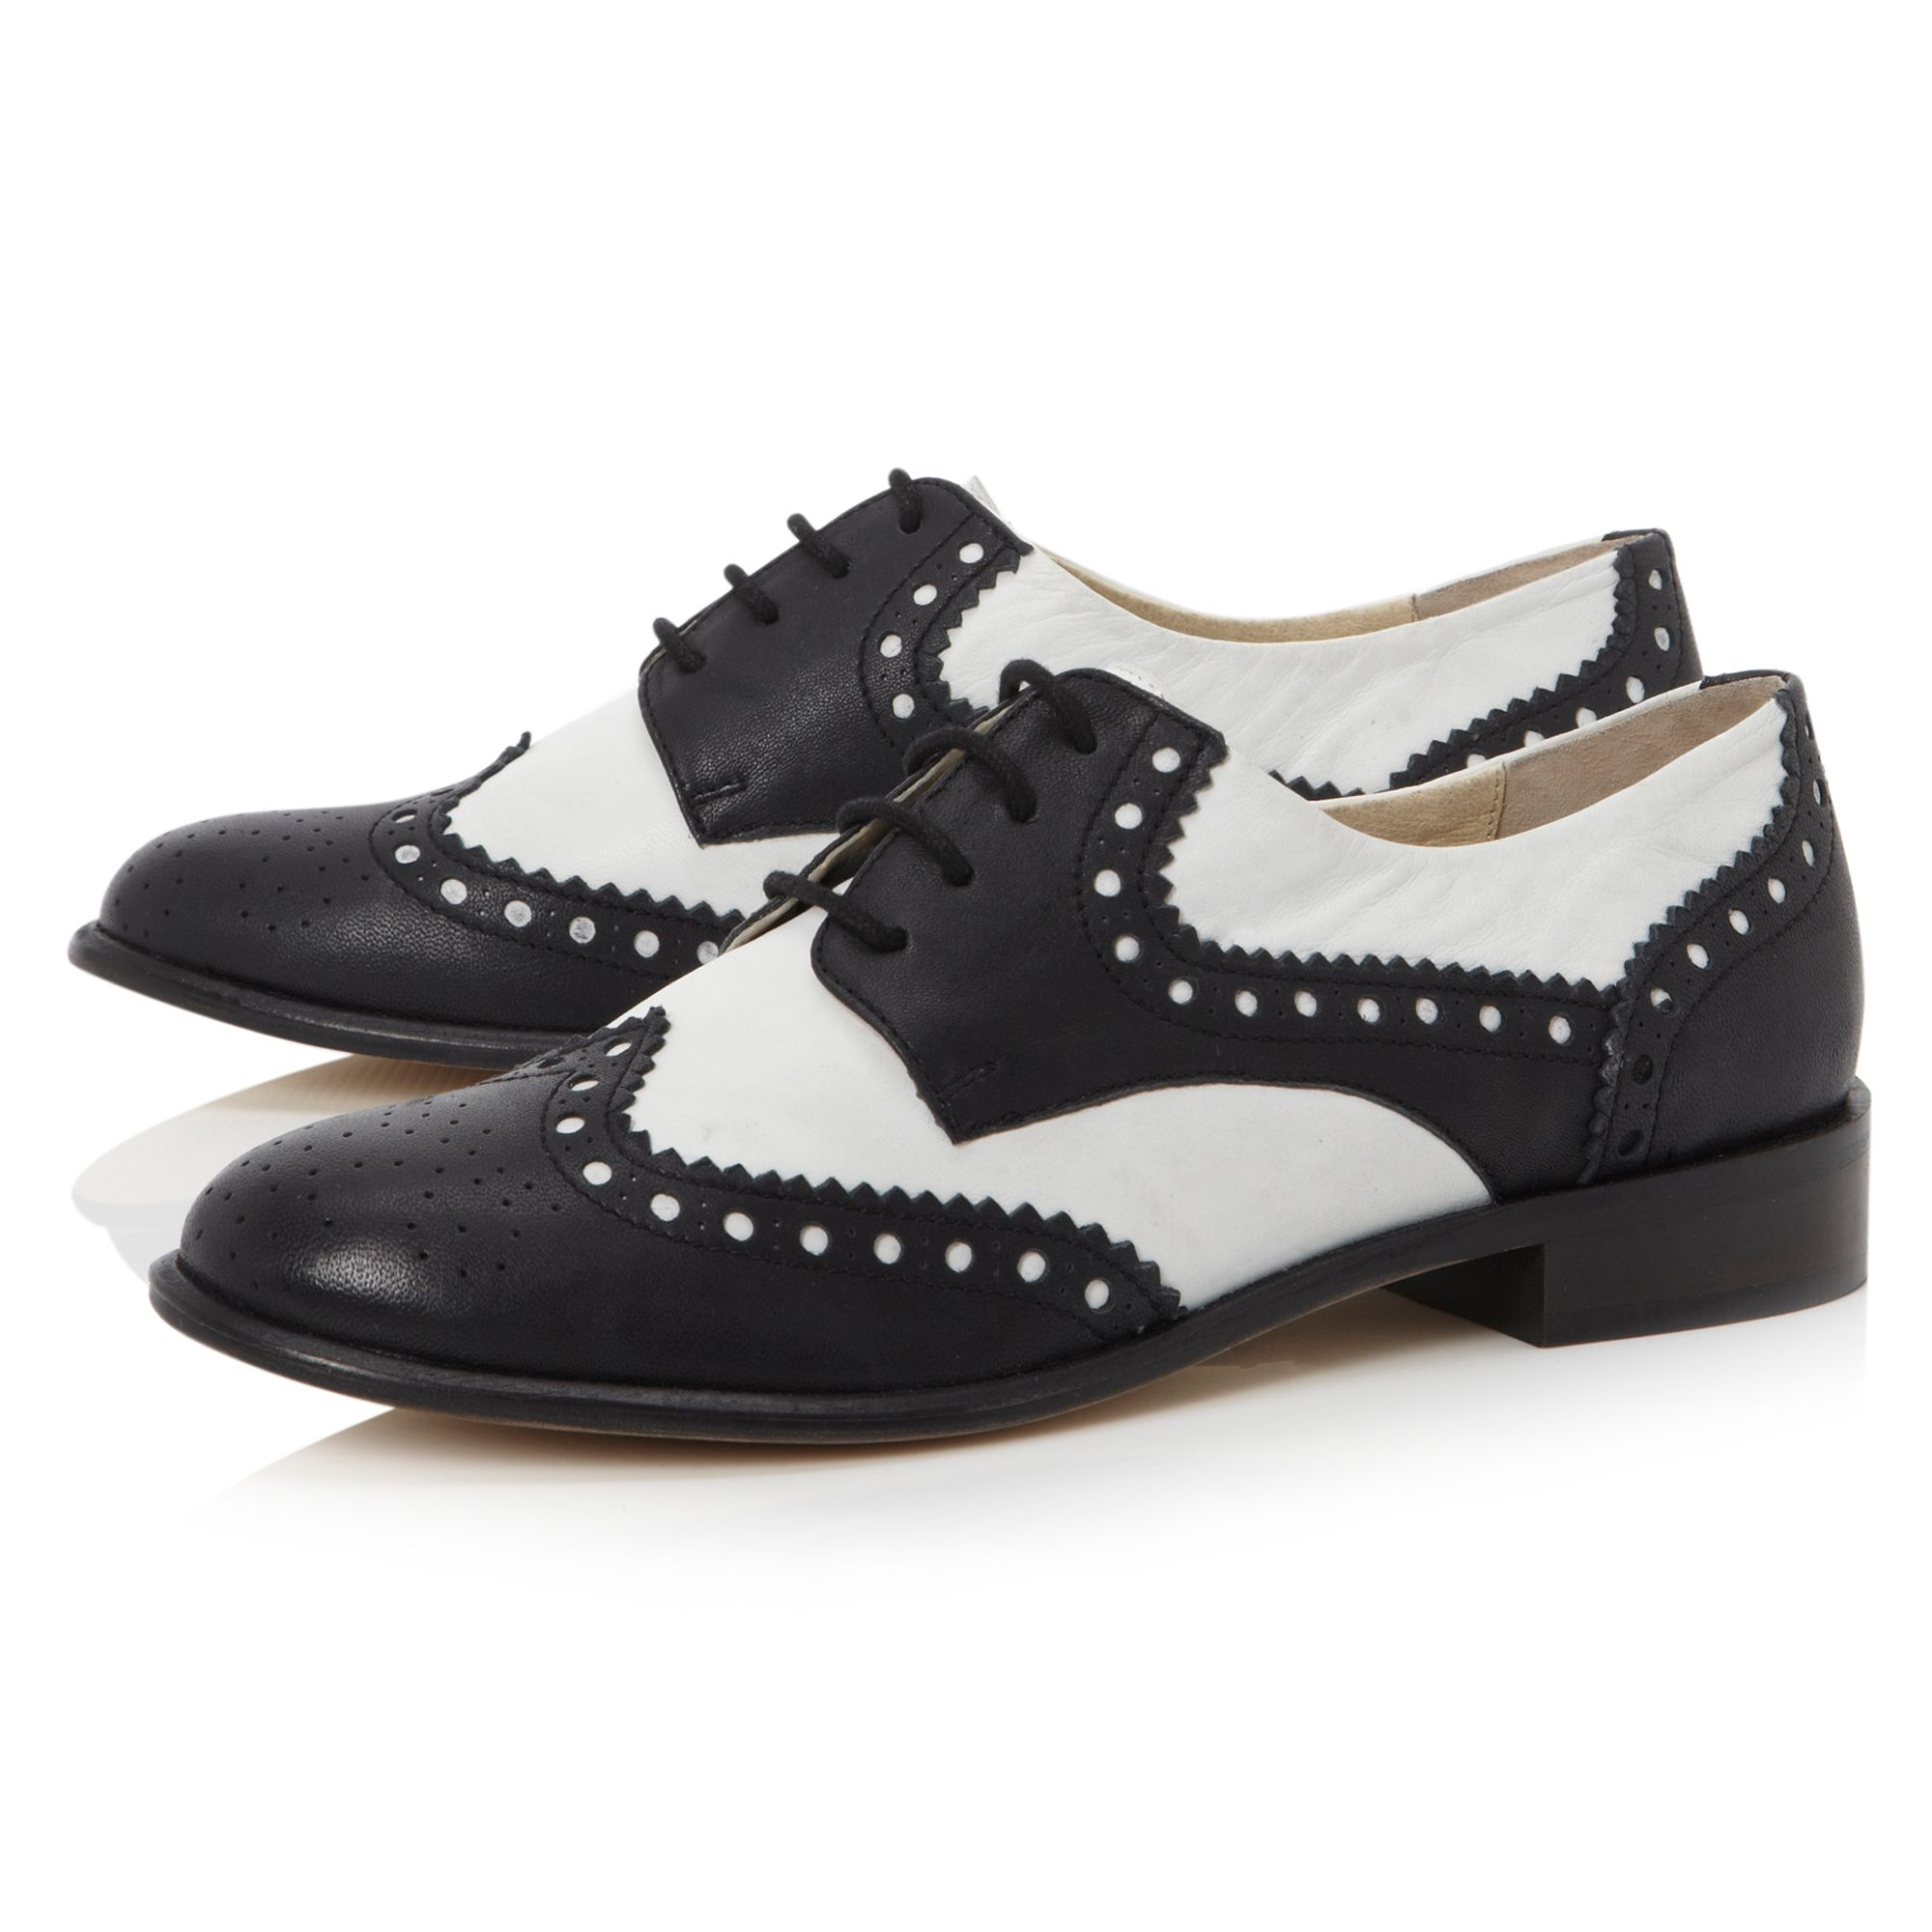 Langbury structured lace up brogue shoes